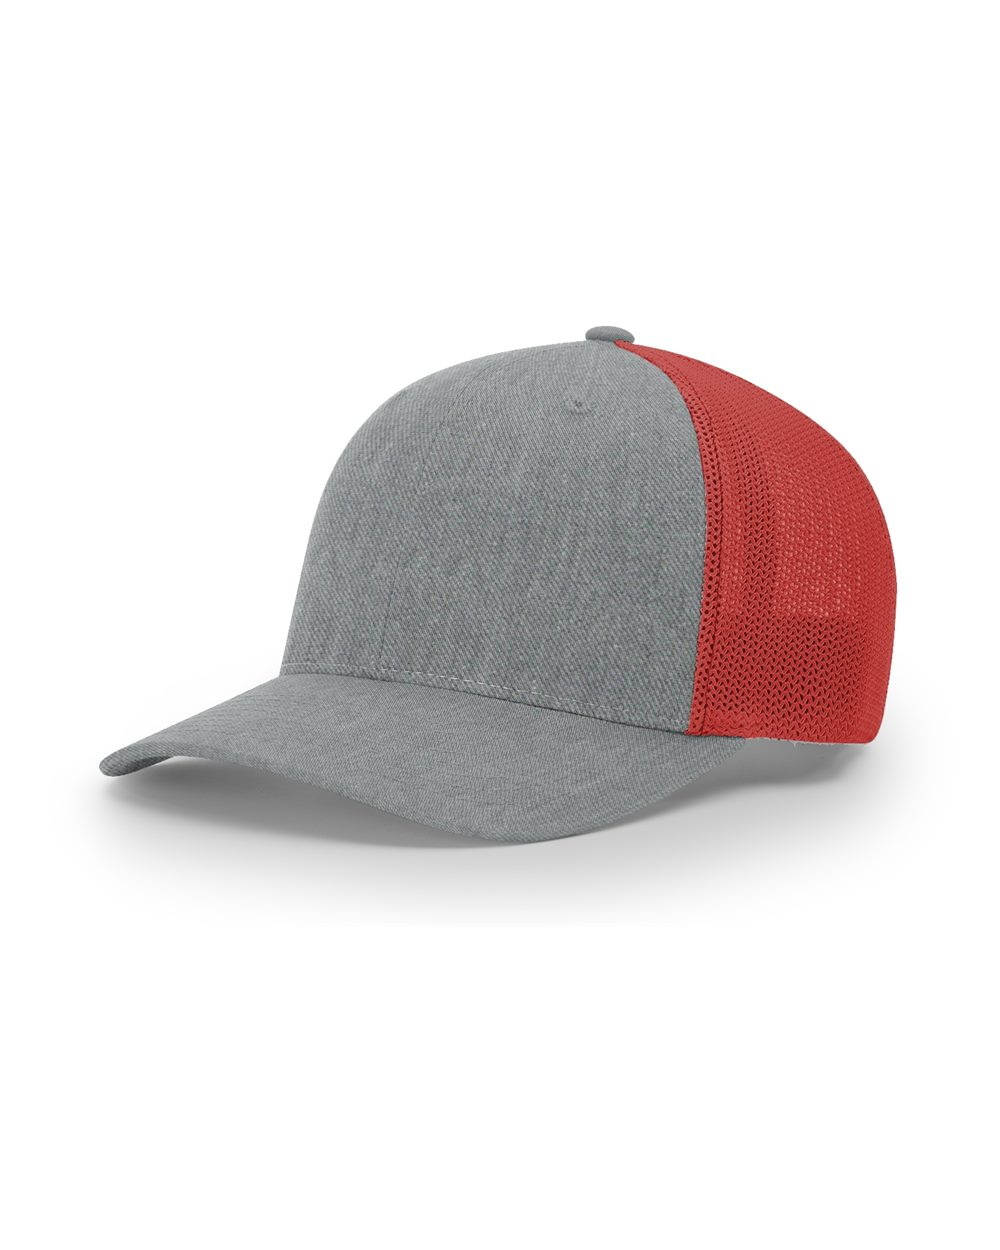 Heather Gray/ Red